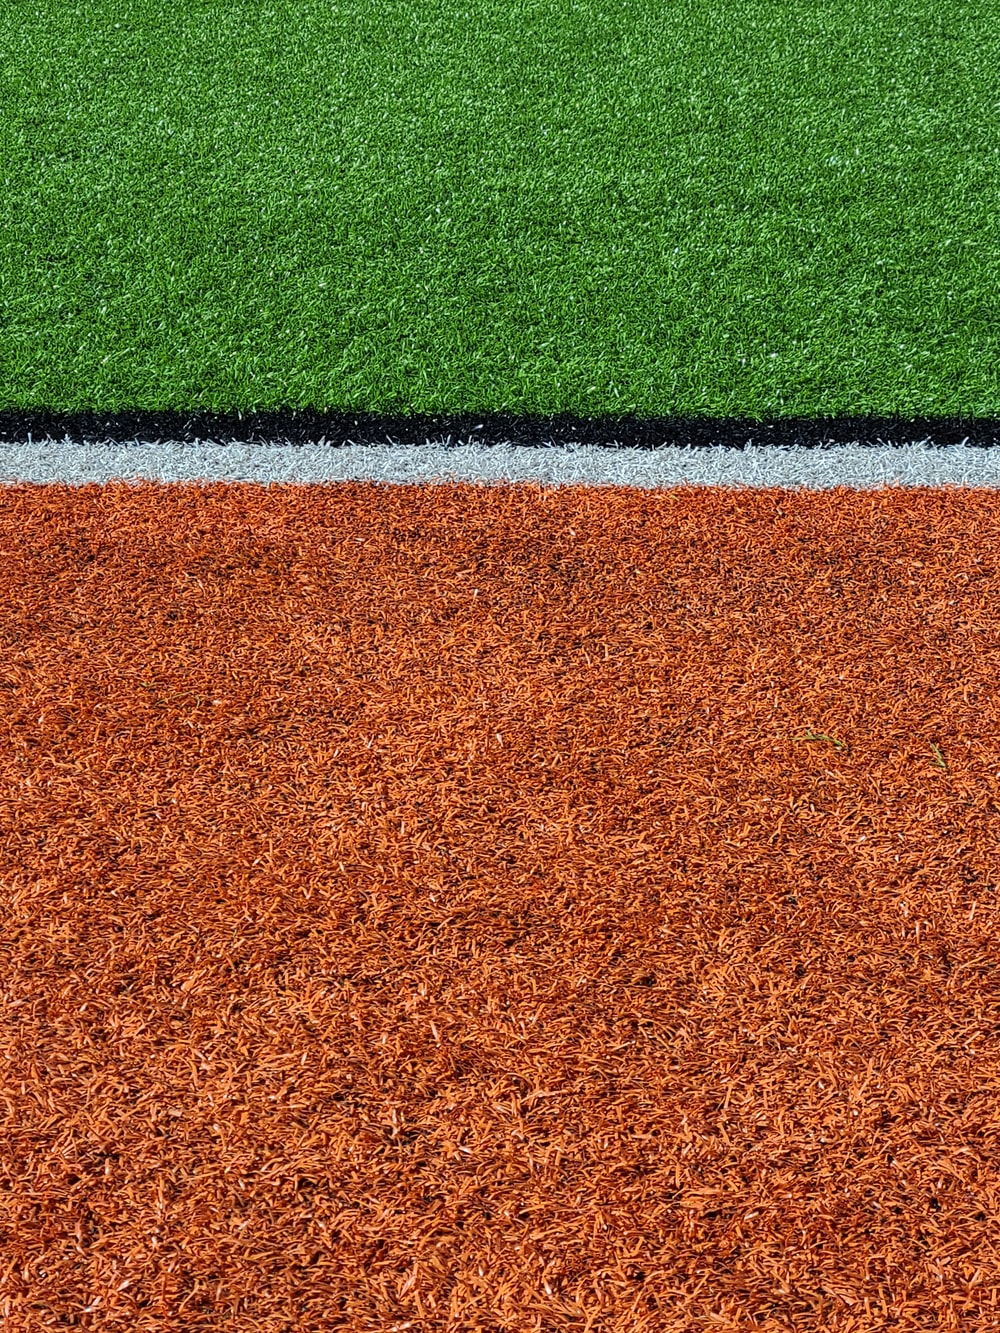 brown and green grass field